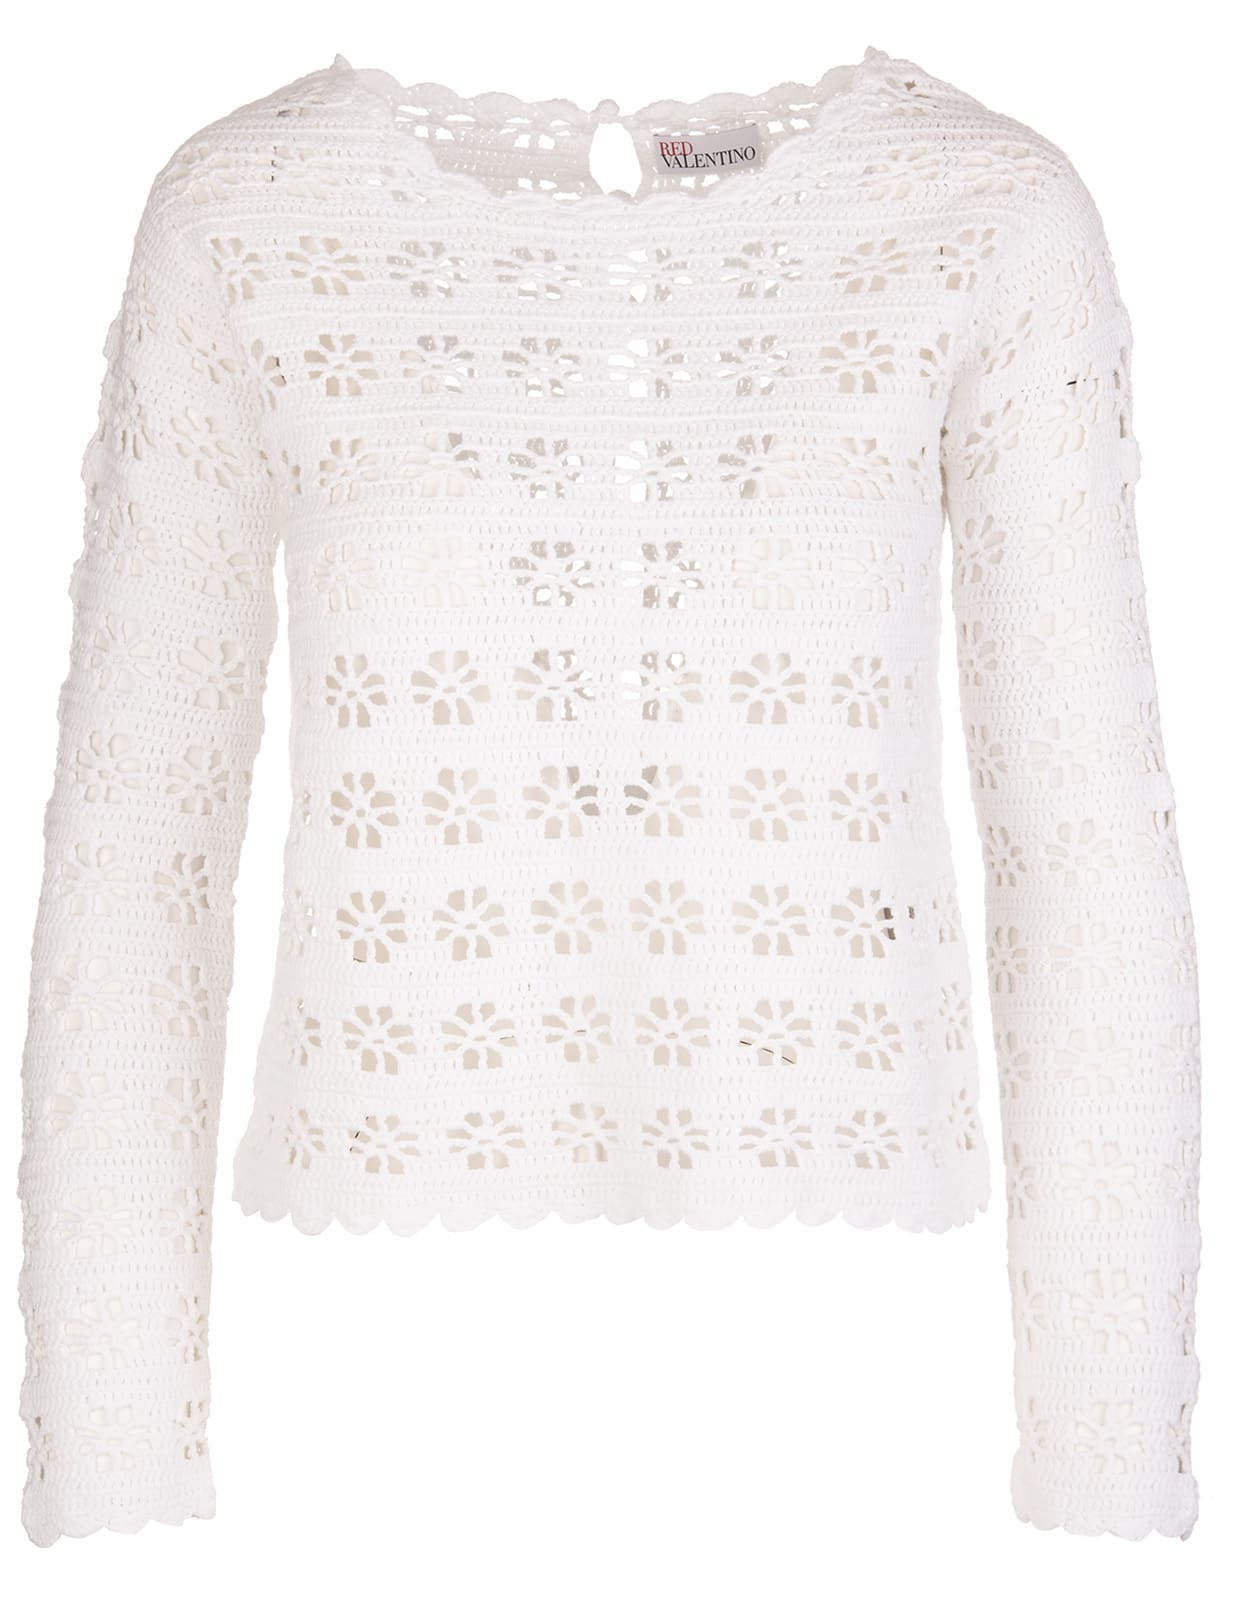 RED Valentino White Shirt With Cu-out Flowers